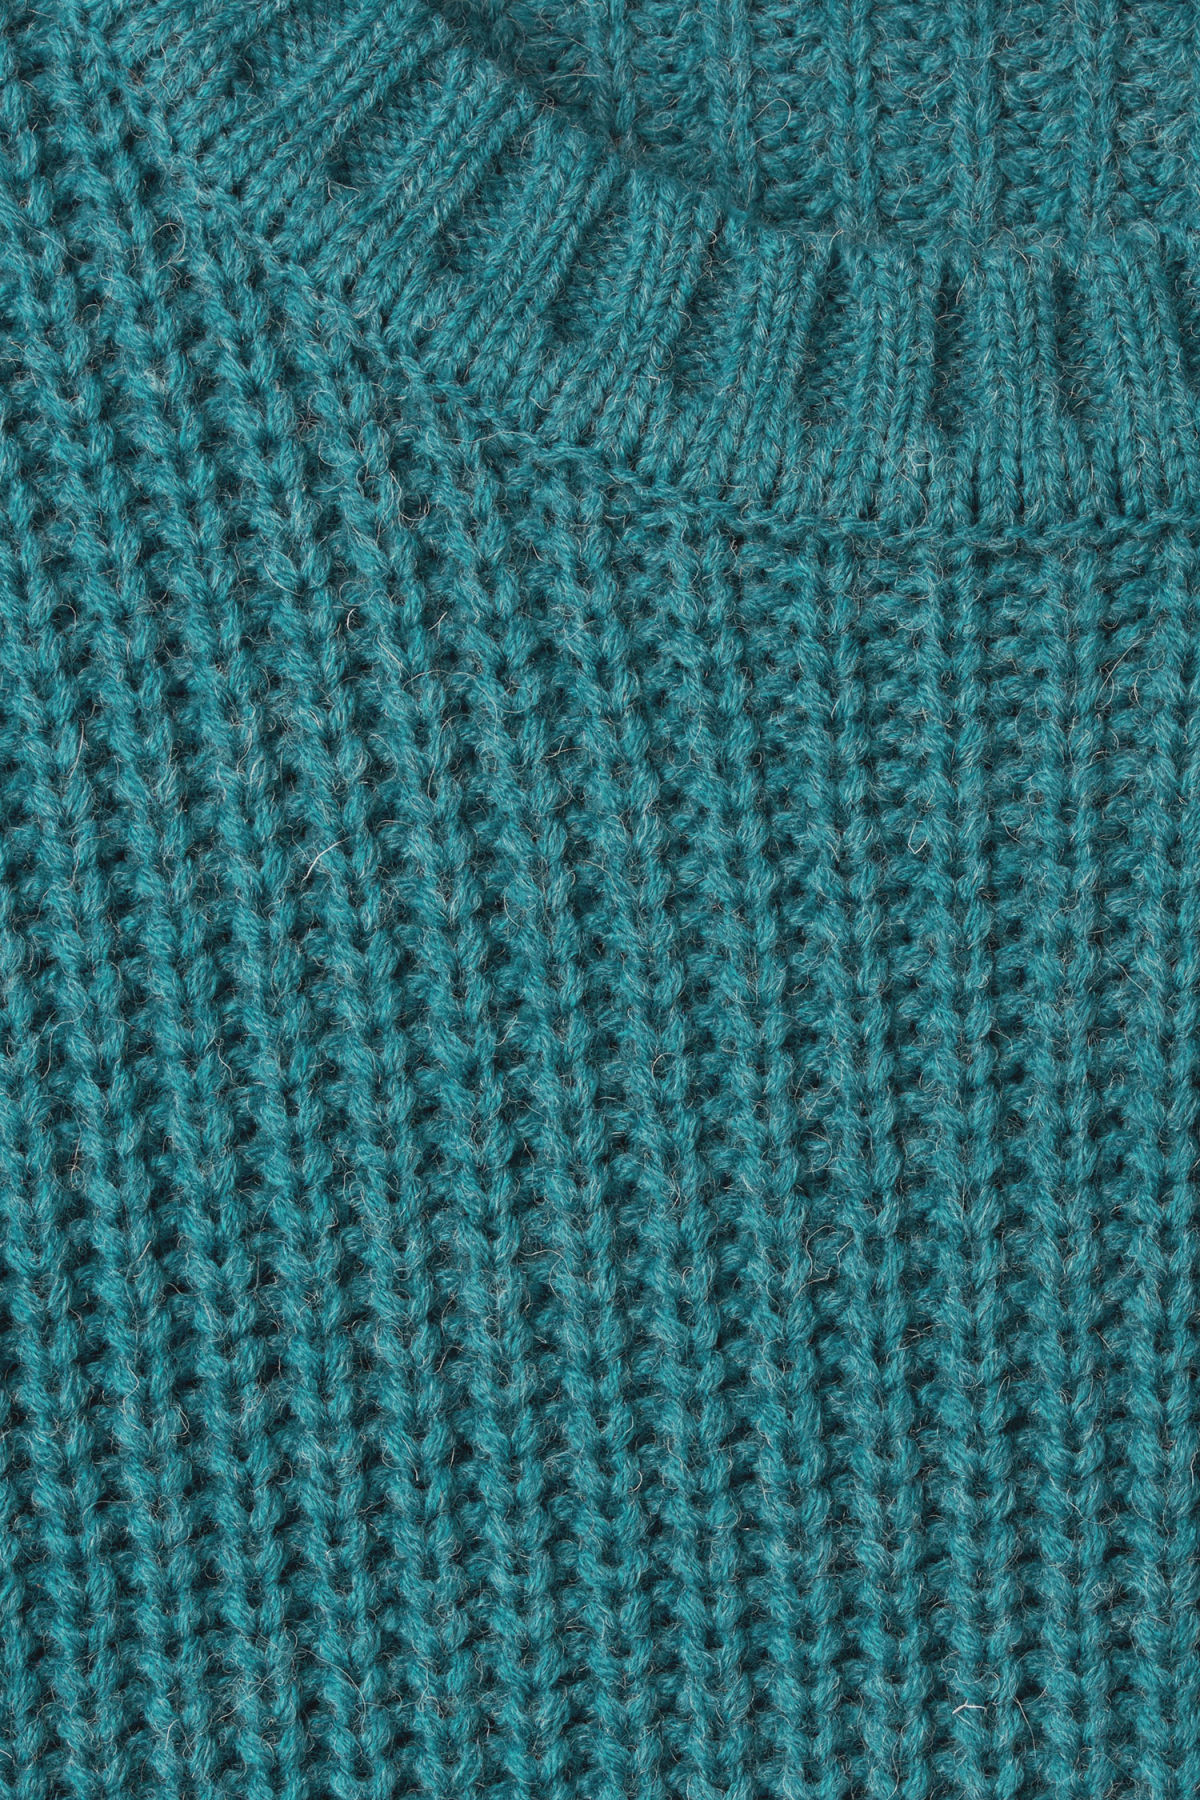 Detailed image of Weekday dieago sweater in turquoise